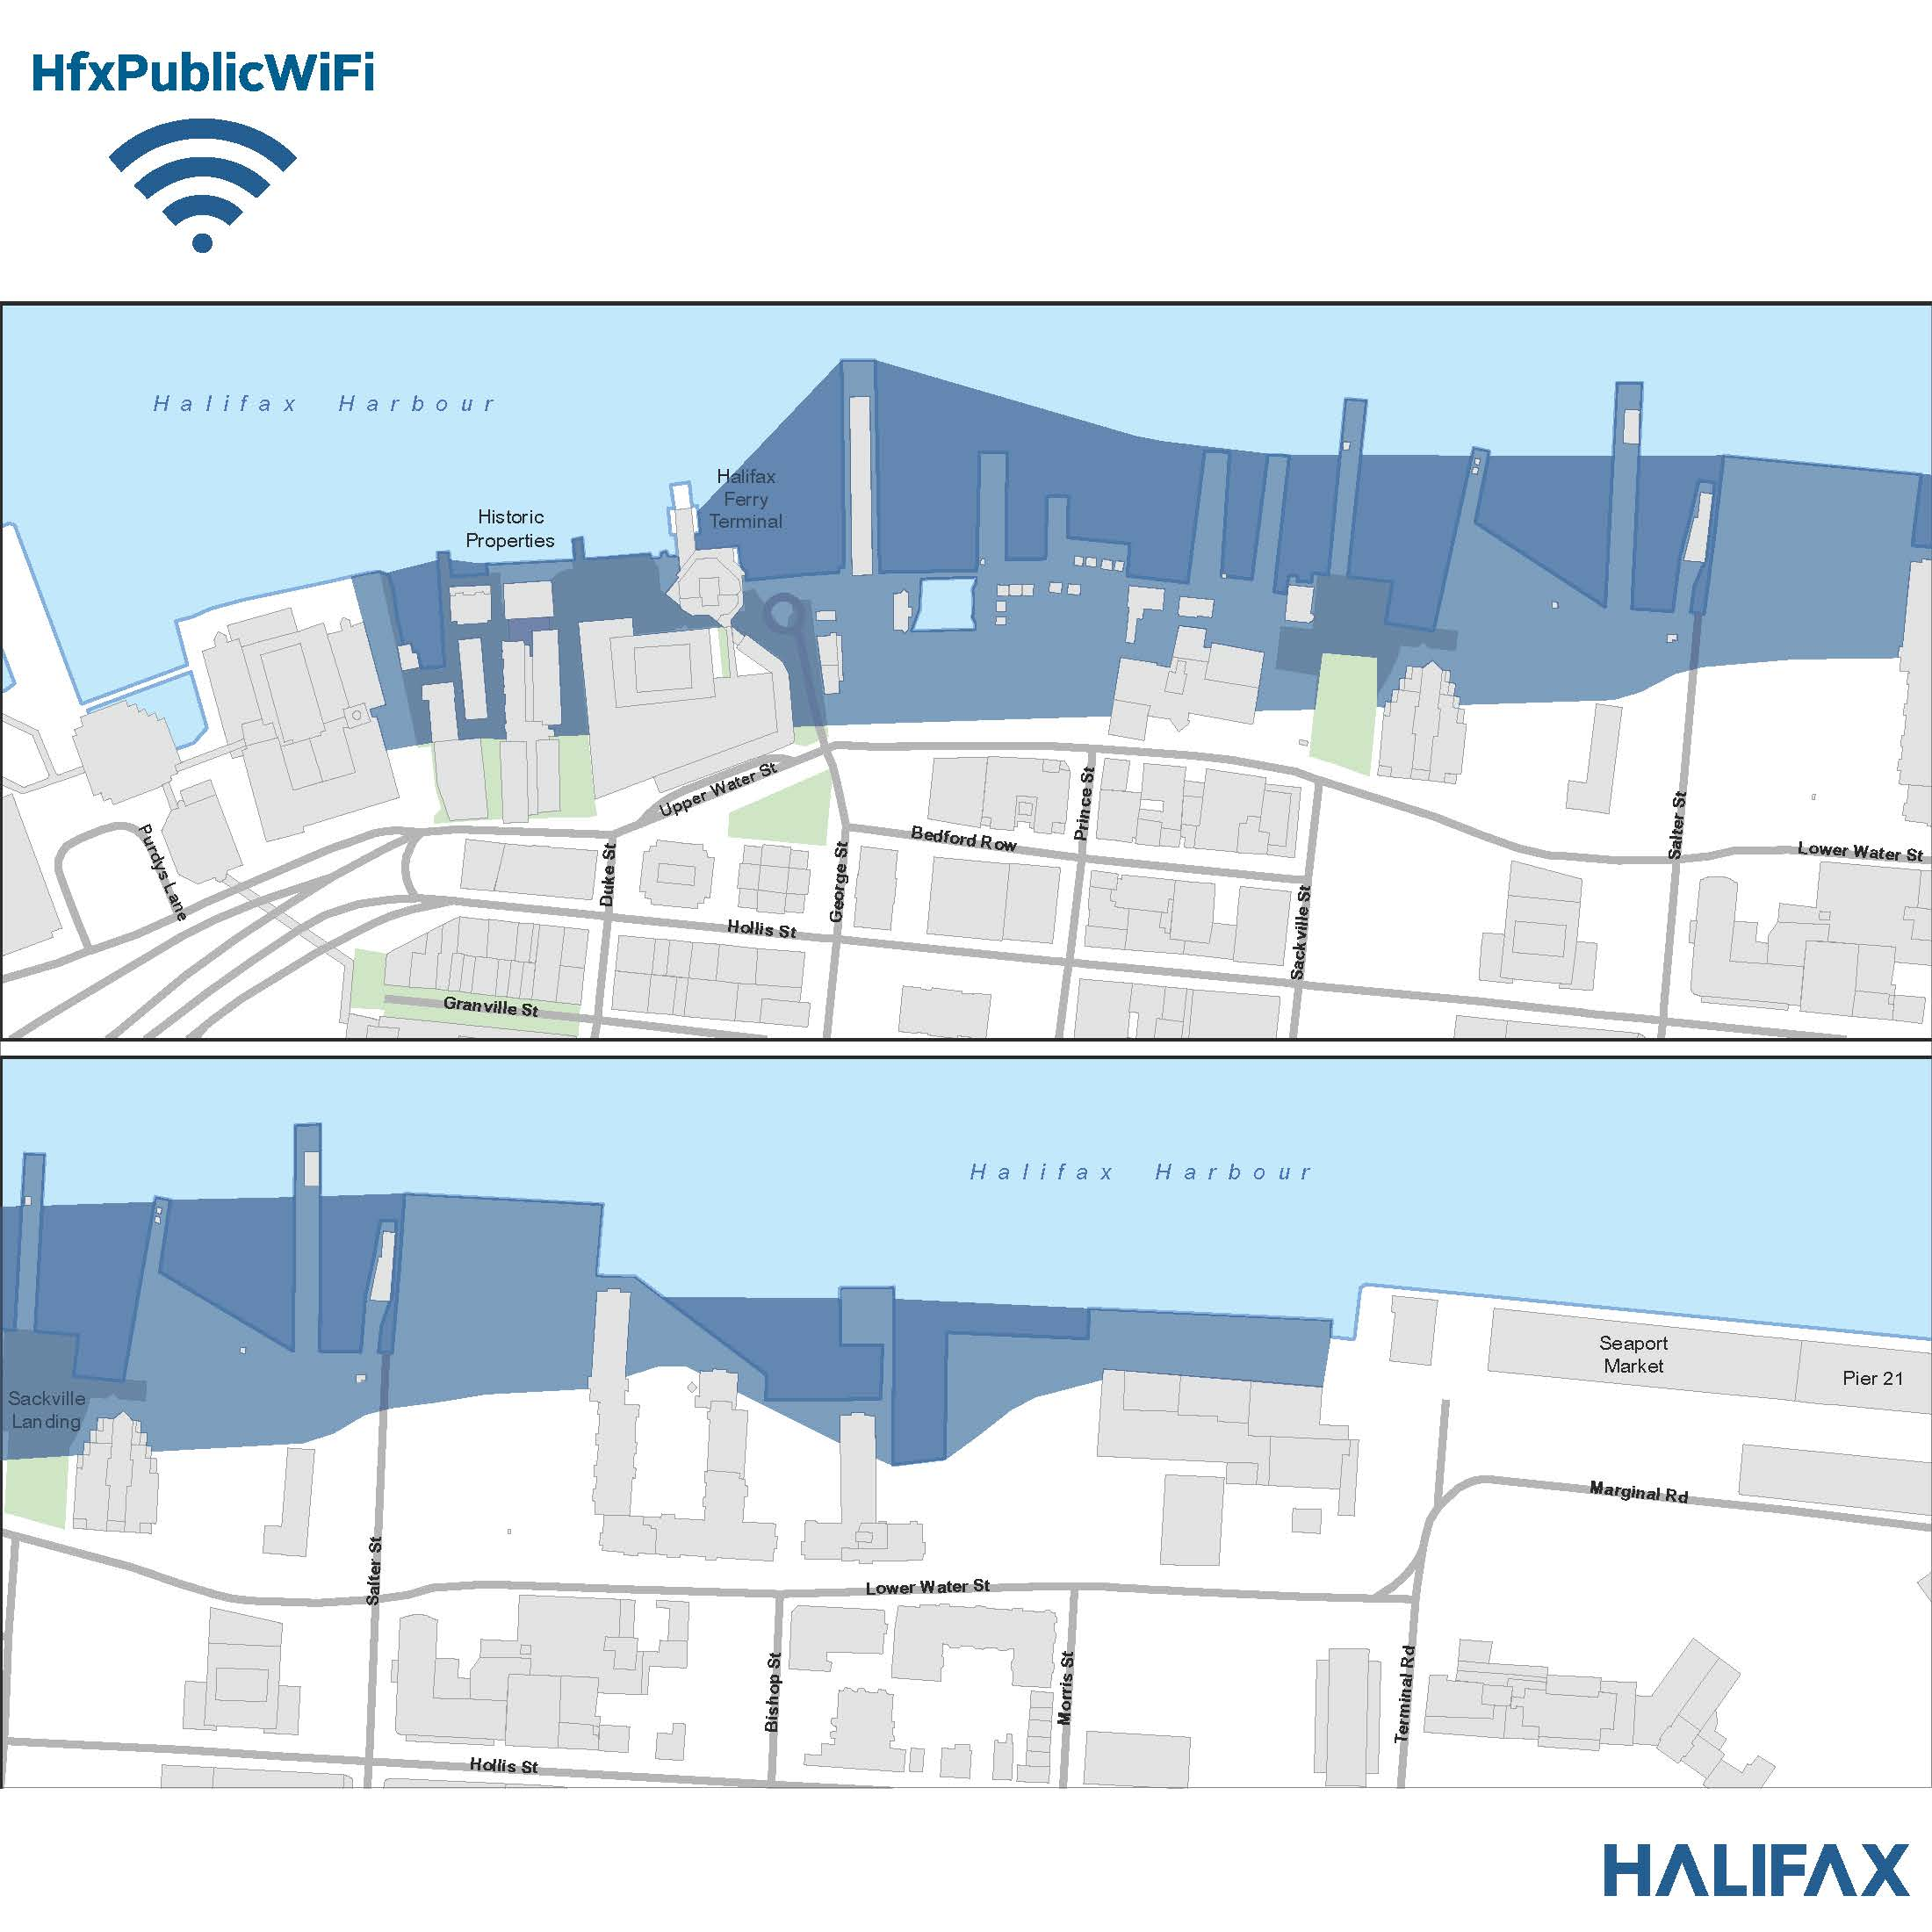 Halifax Waterfront Coverage